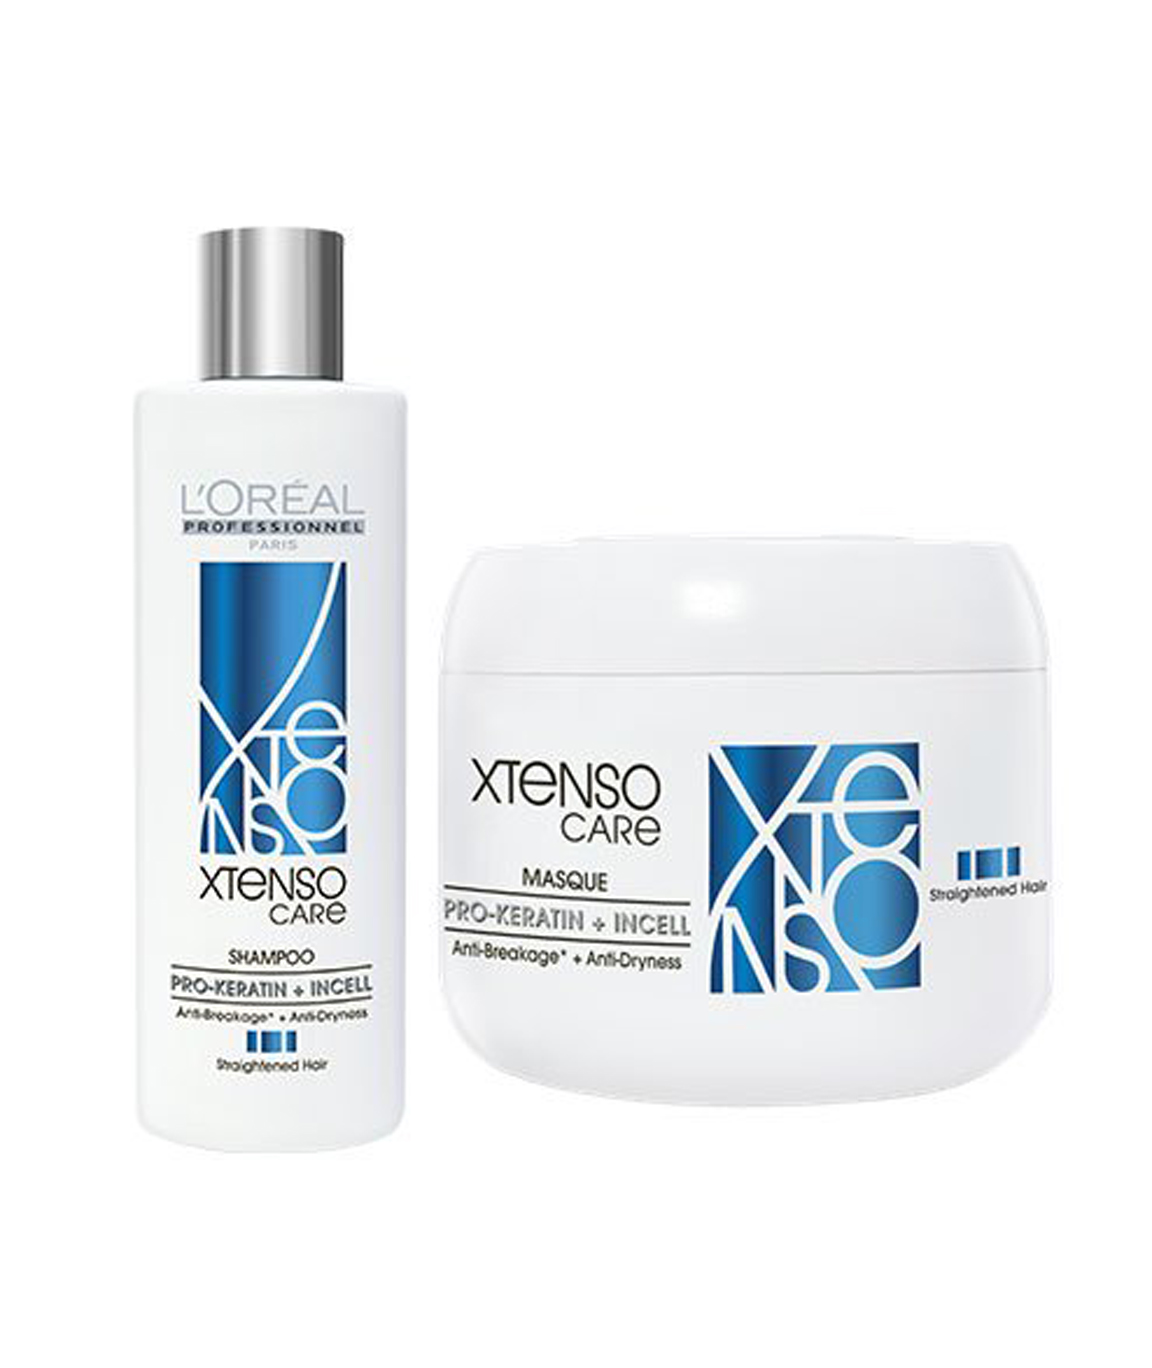 L`Oreal Paris Professional X-tenso Care Straight Shampoo 230 ml and Masque 196 g Combo Pack